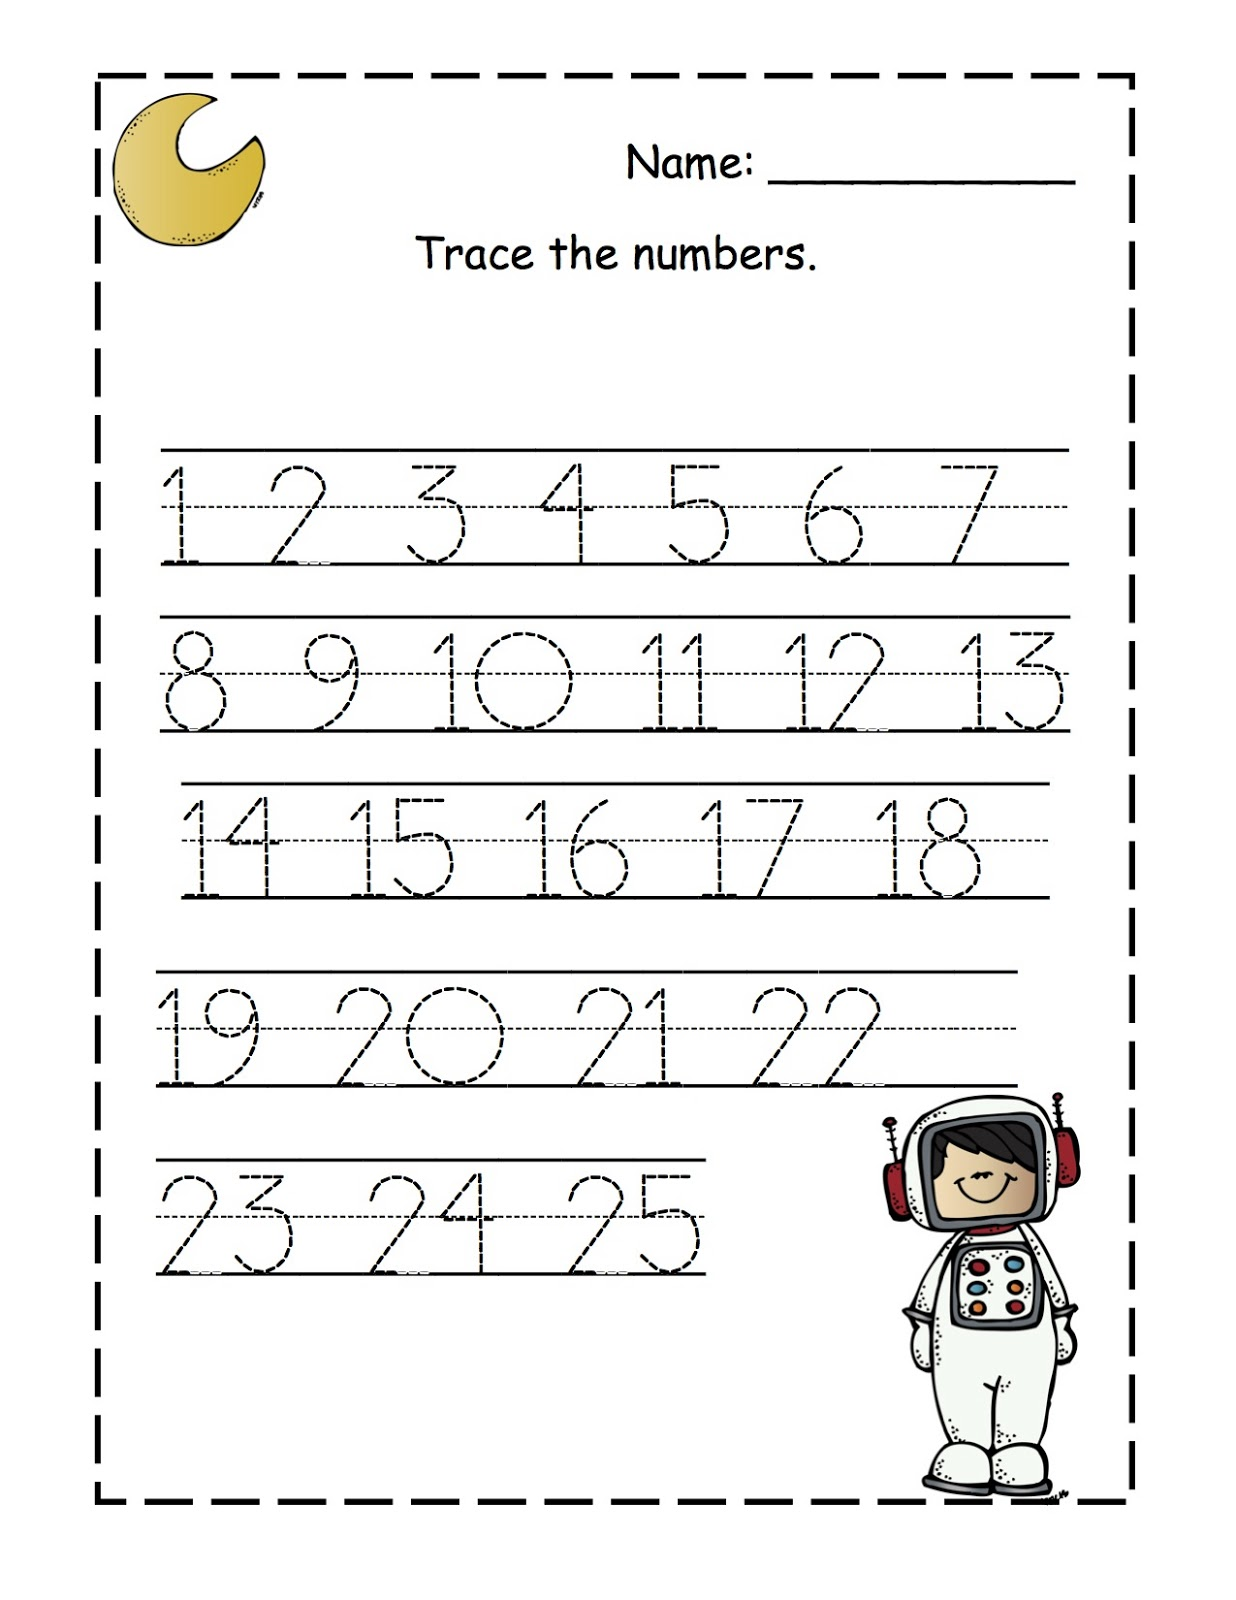 Numbers tracing printables for preschoolers - Worksheet Tracing Numbers Worksheets 1 20 Worksheet Tracing Numbers Worksheets 1 20 Mikyu Free Number